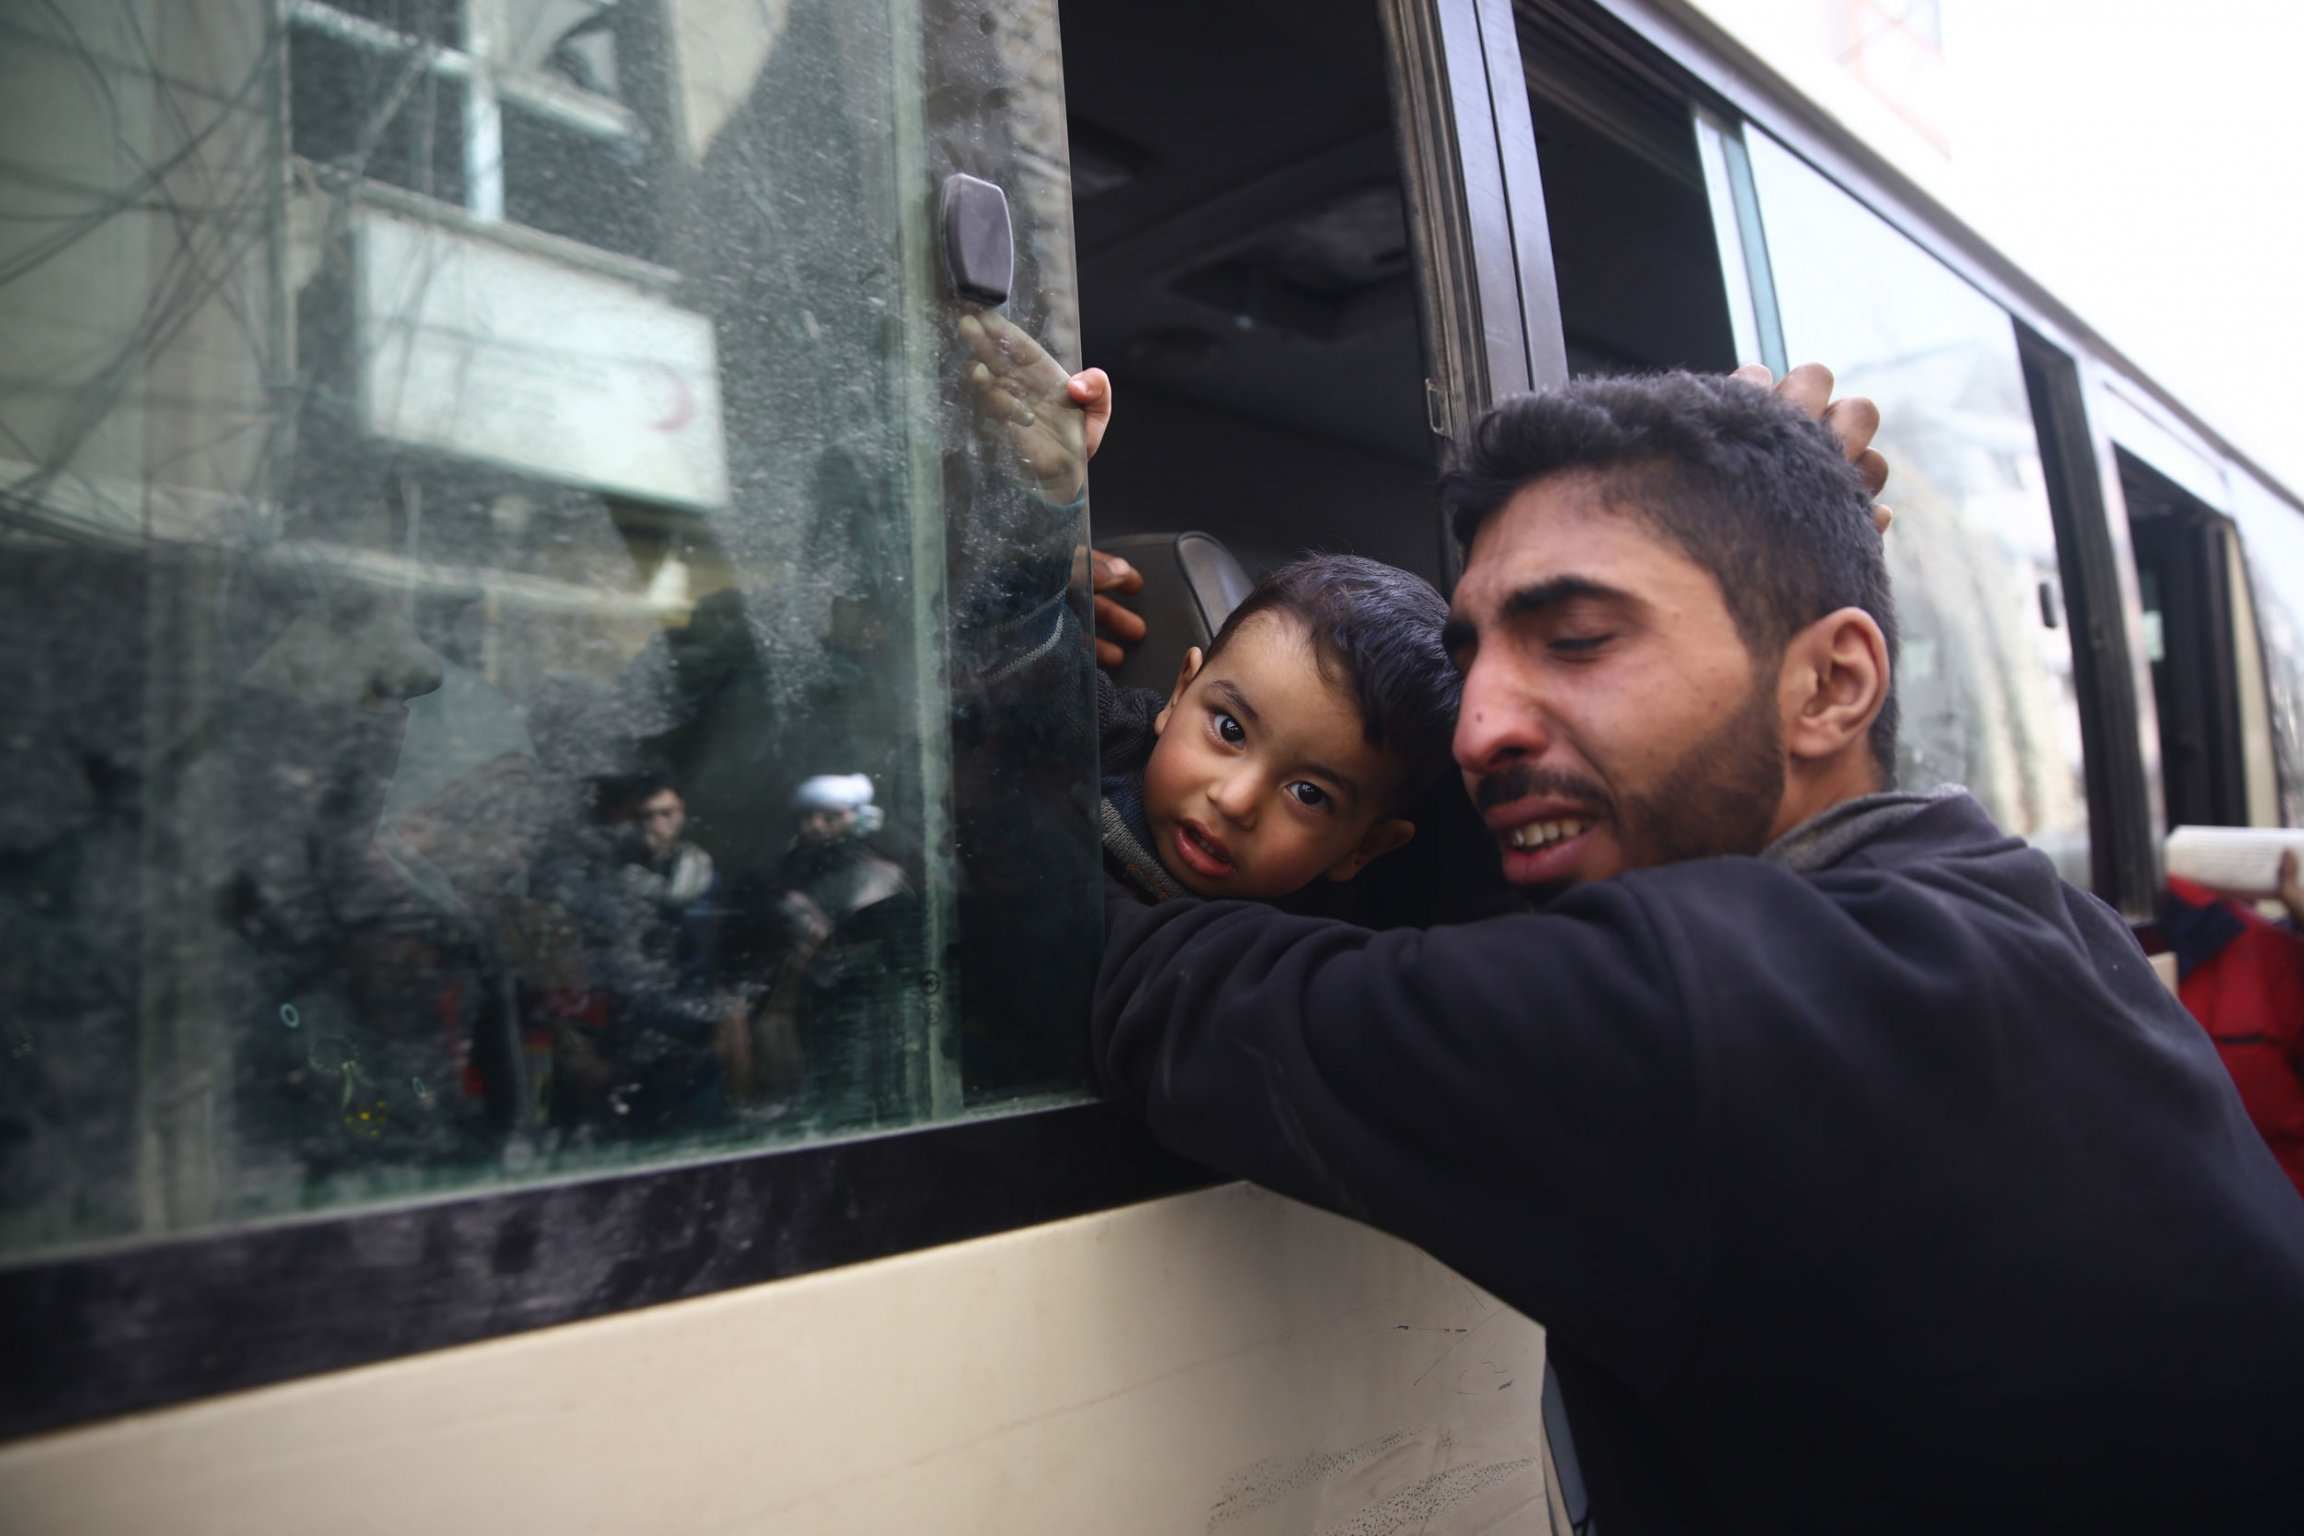 A man is shown reaching into a bus window and hugging his young son whom is staring at the camera.